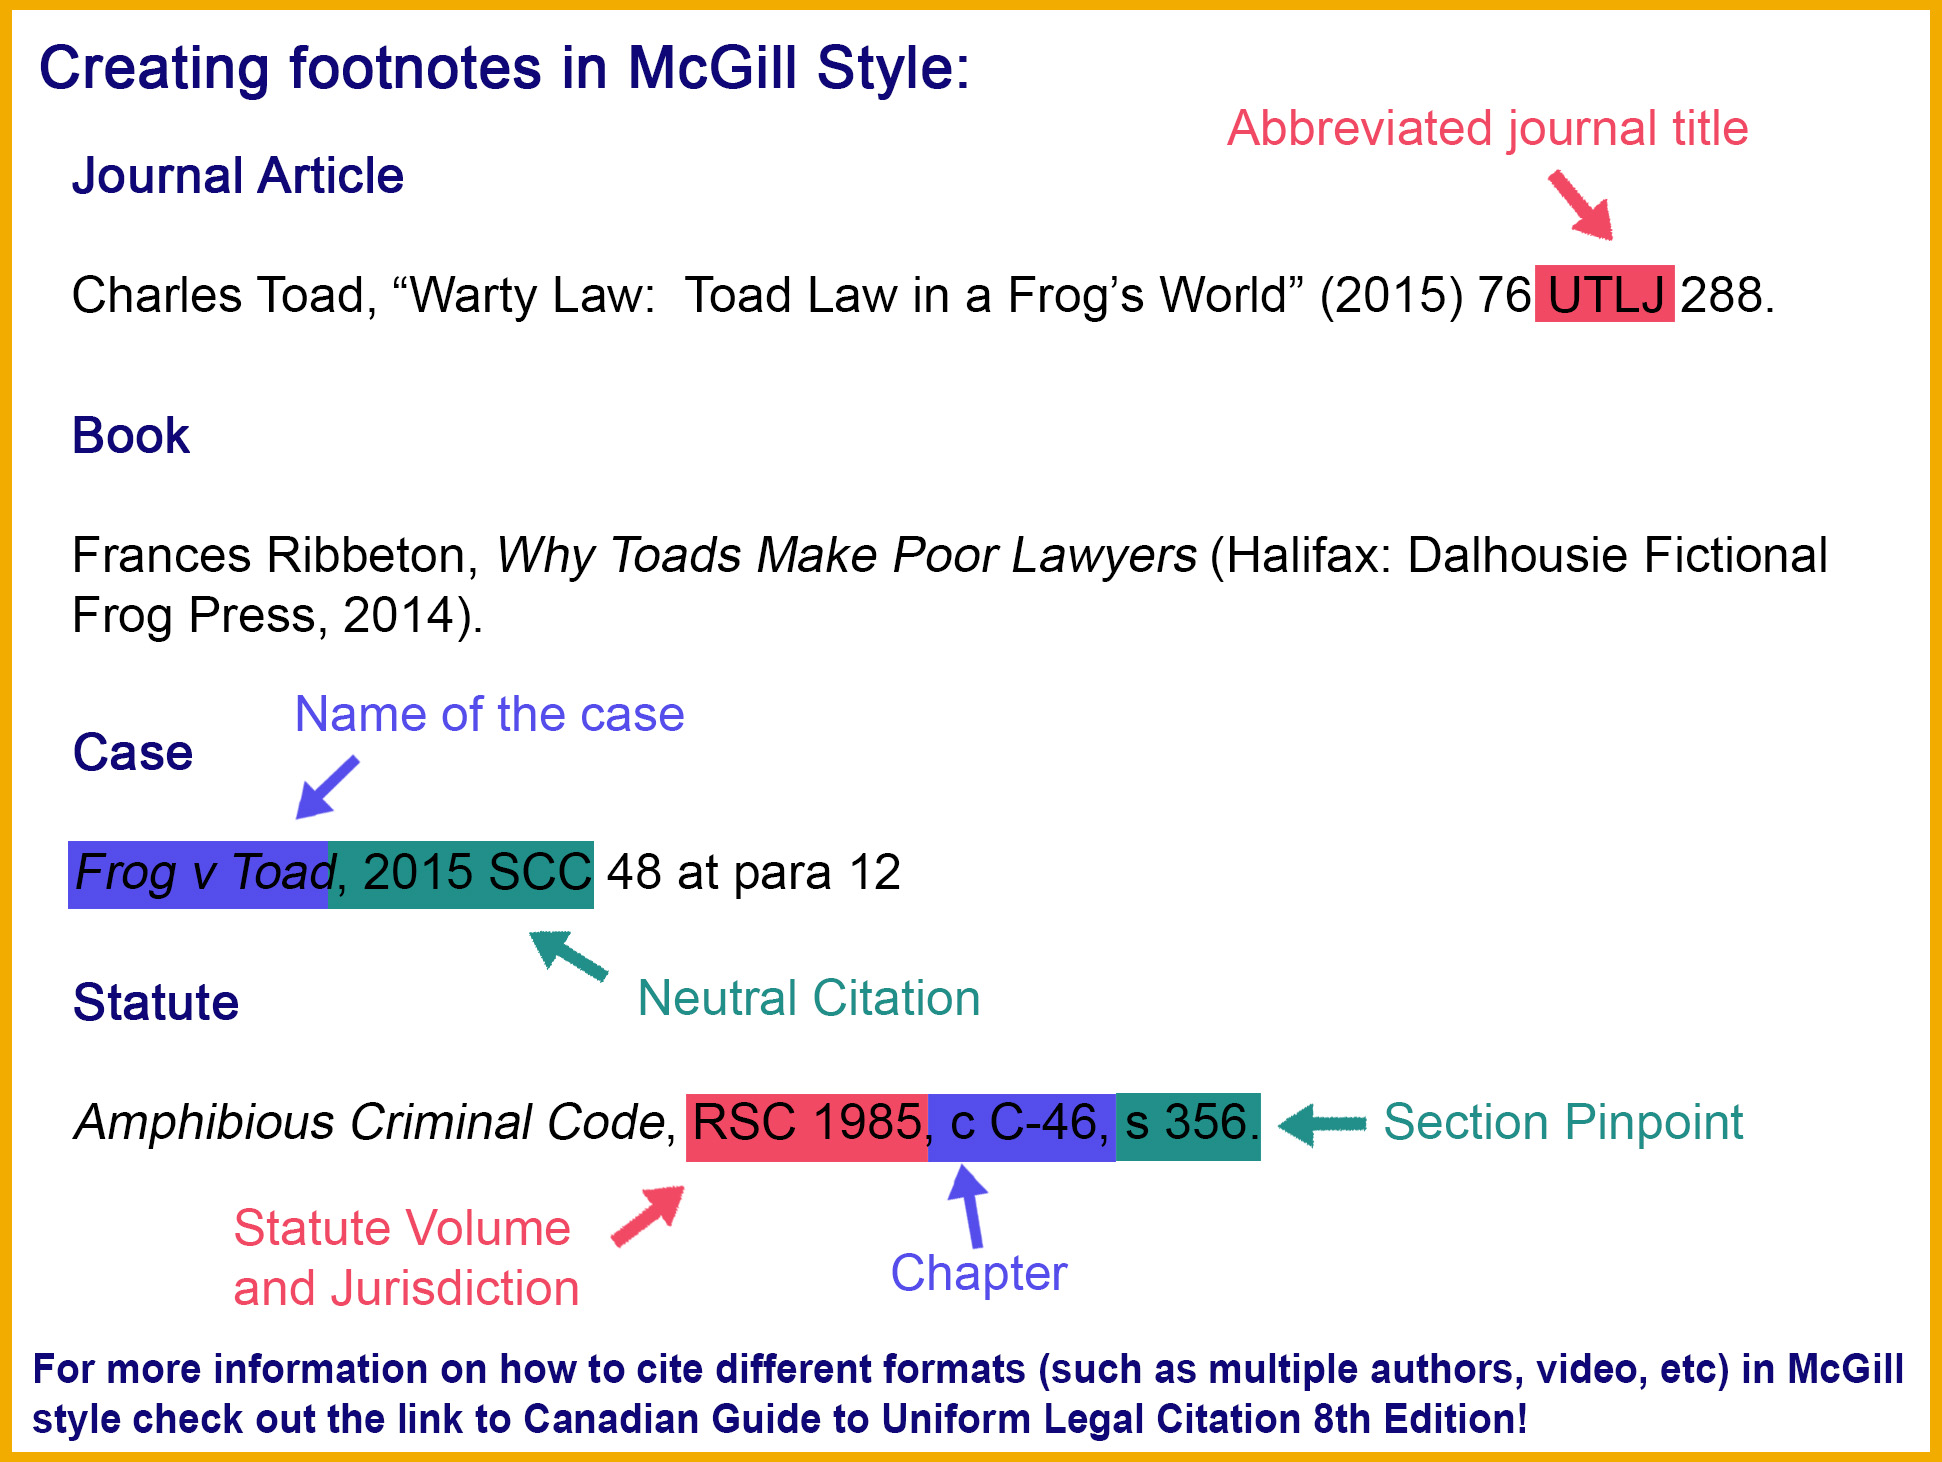 mcgill 8th edition - citation style guide